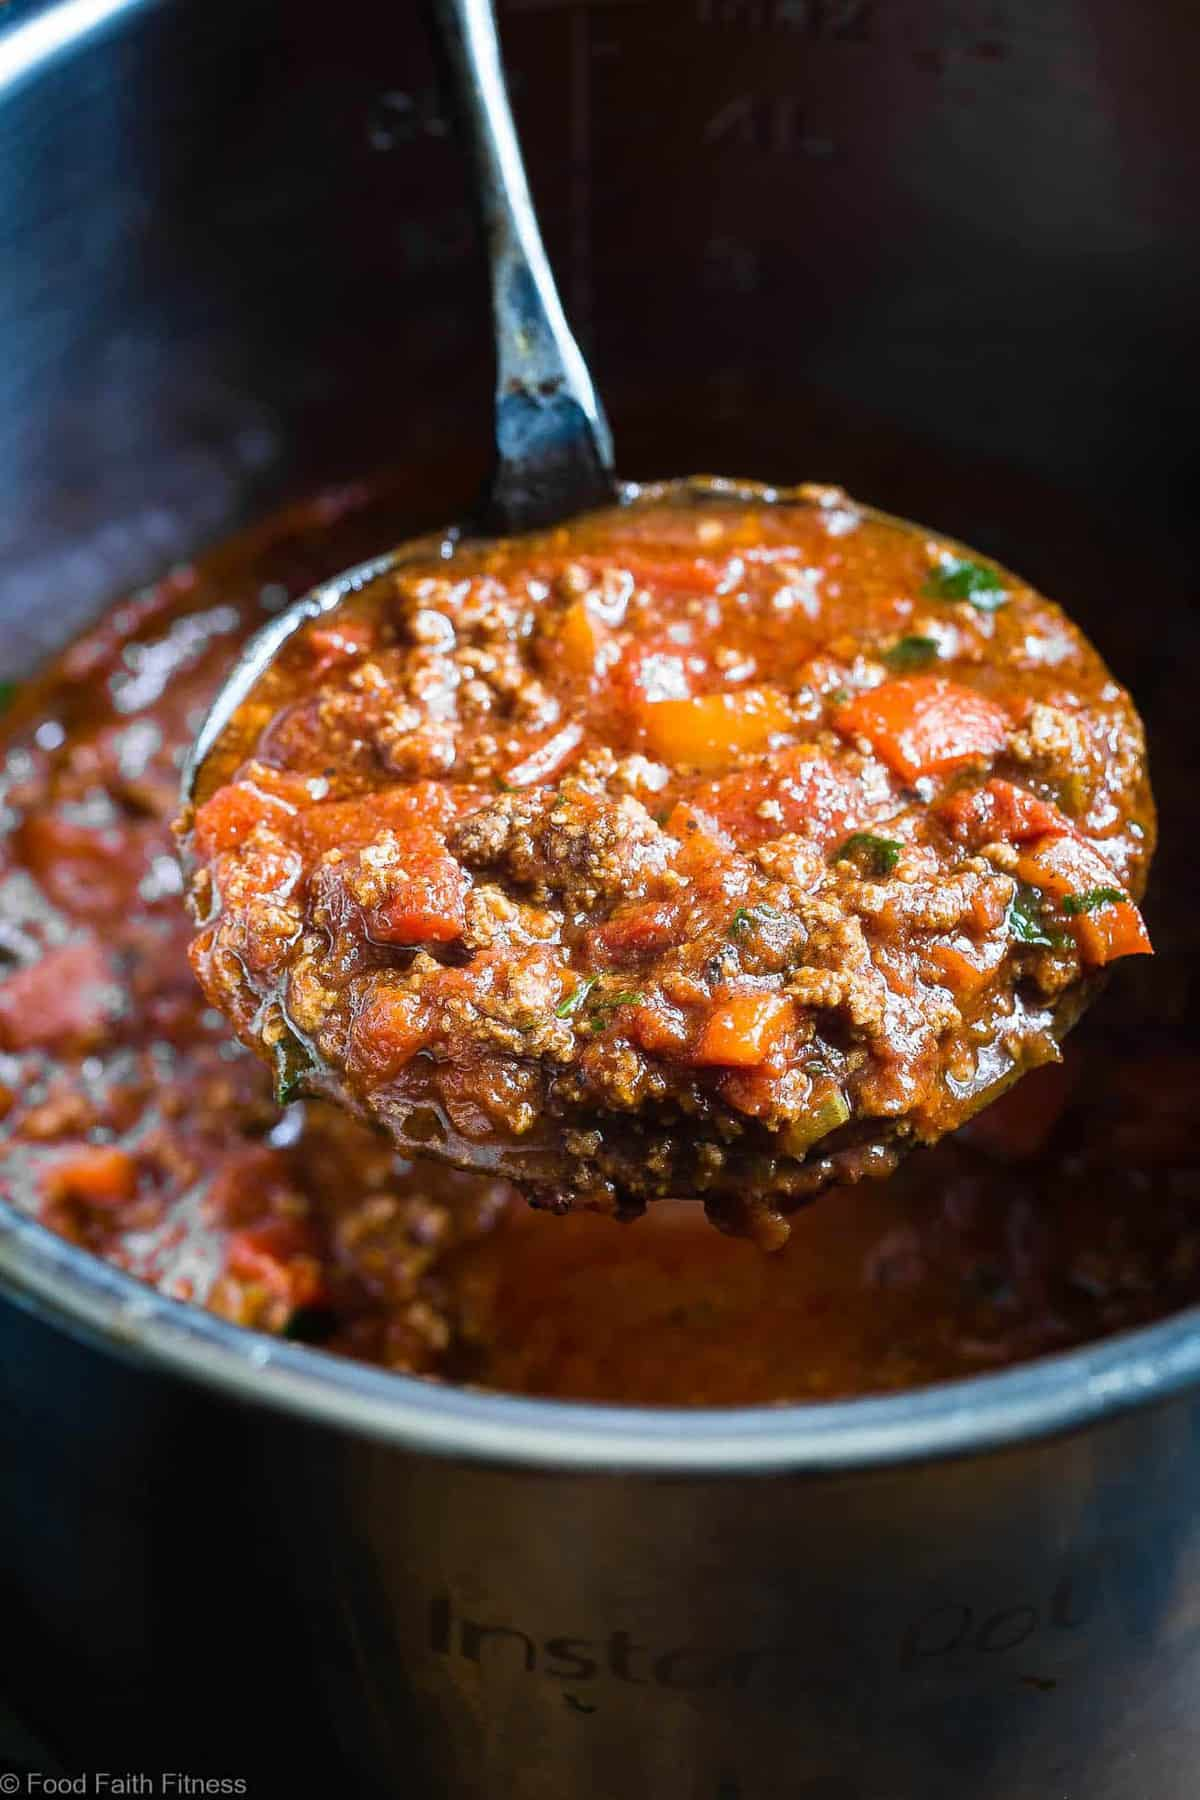 Instant Pot Whole30 Keto Chili Recipe - This paleo chili is a meat lovers dream! It's the easiest healthy weeknight dinner that the whole family will love and it freezes great for leftovers or meal prep! | #Foodfaithfitness | #Keto #Lowcarb #Paleo #Whole3o #InstantPot